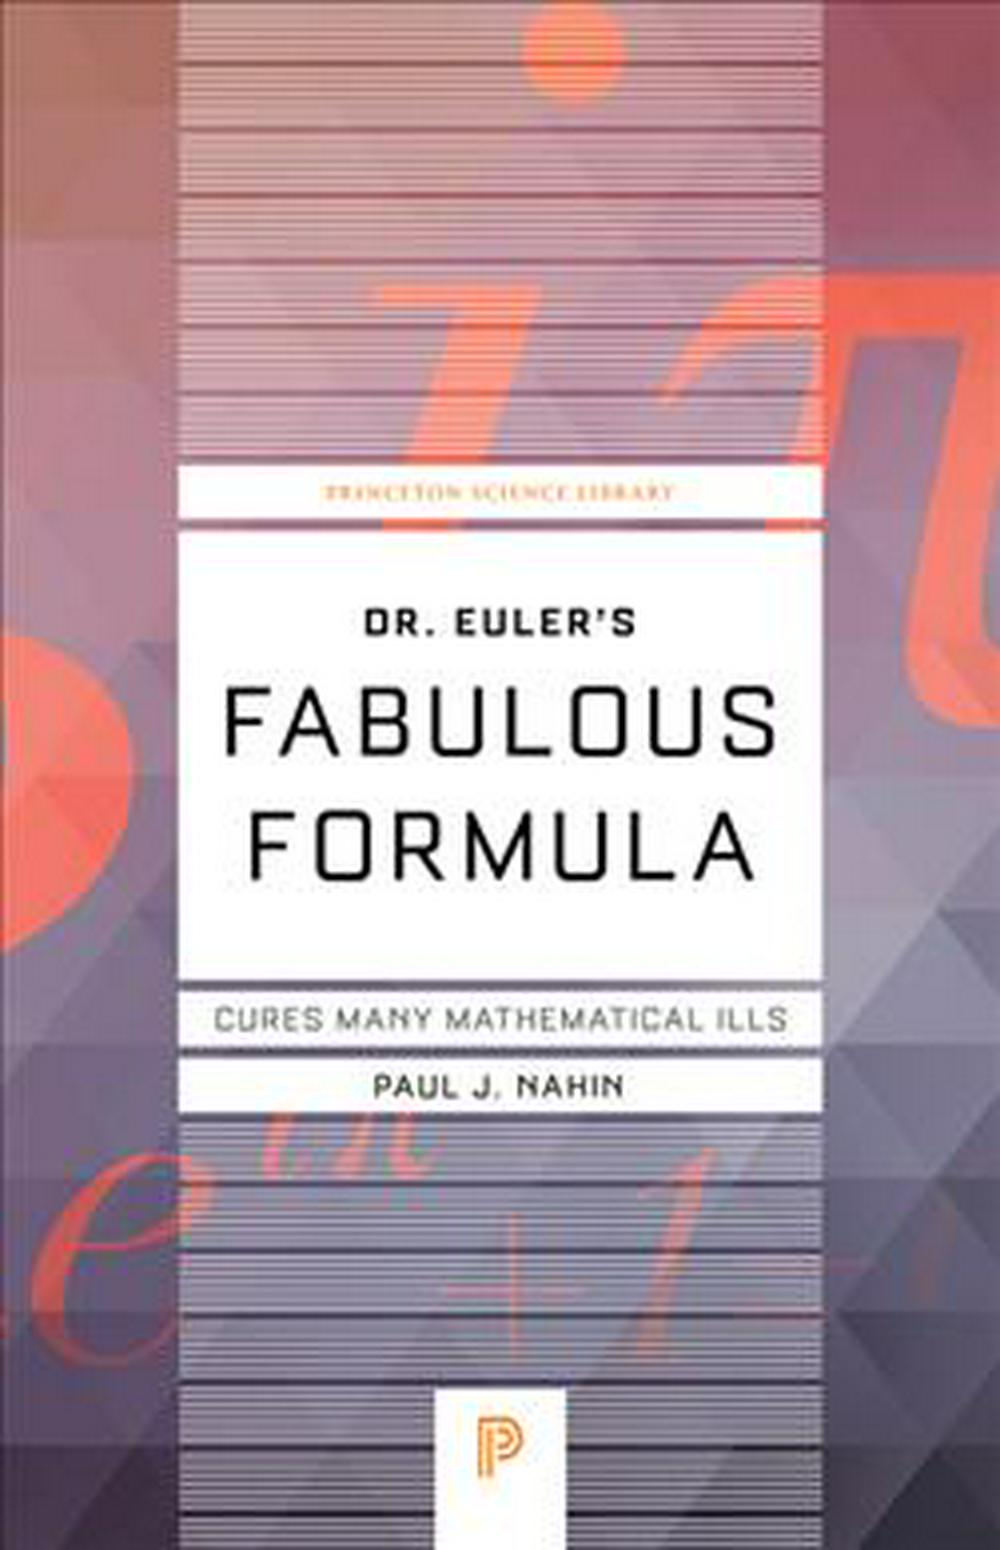 Dr. Euler's Fabulous Formula: Cures Many Mathematical Ills (Princeton Science Library) by Paul J. Nahin, ISBN: 9780691175911